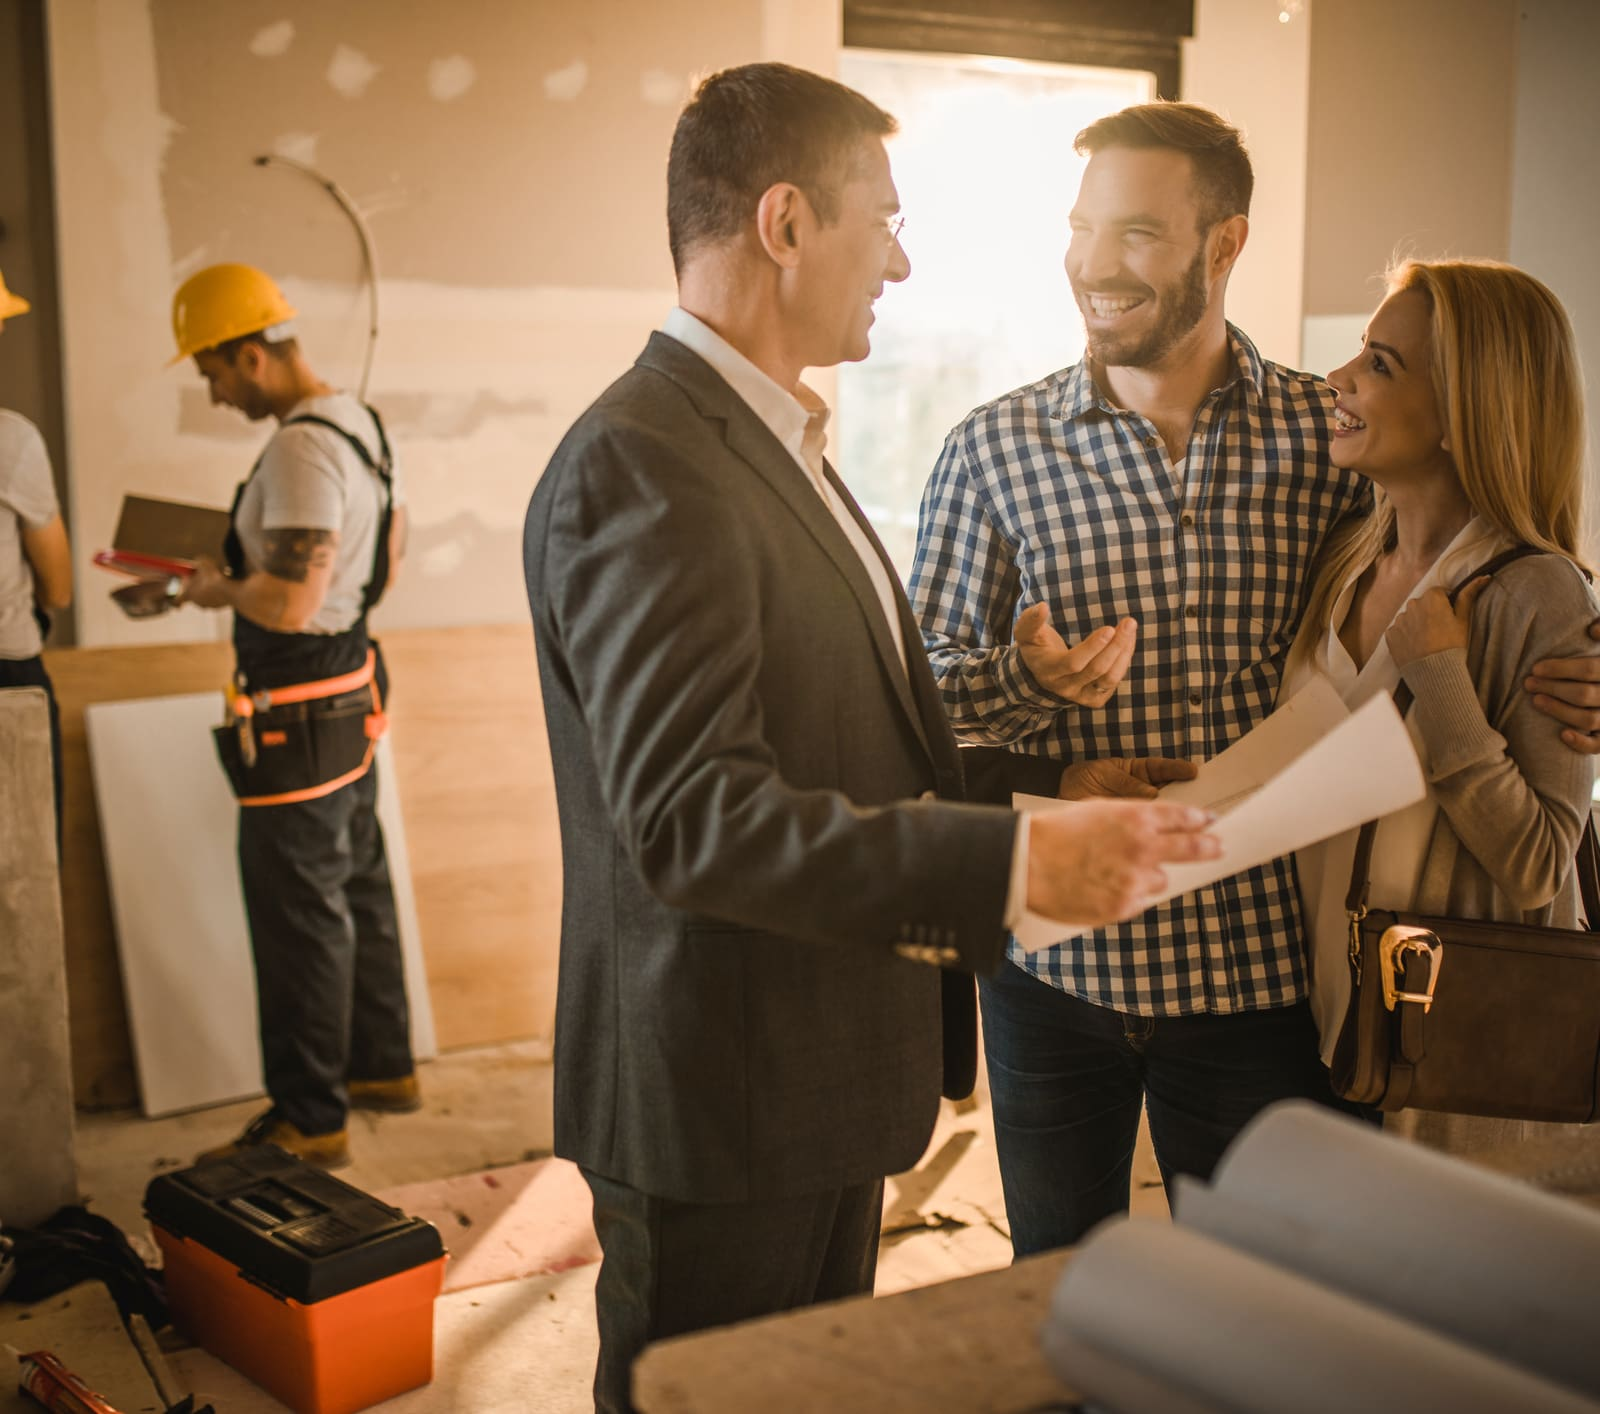 Making a Homeowners Insurance Claim if Doing the Work Yourself